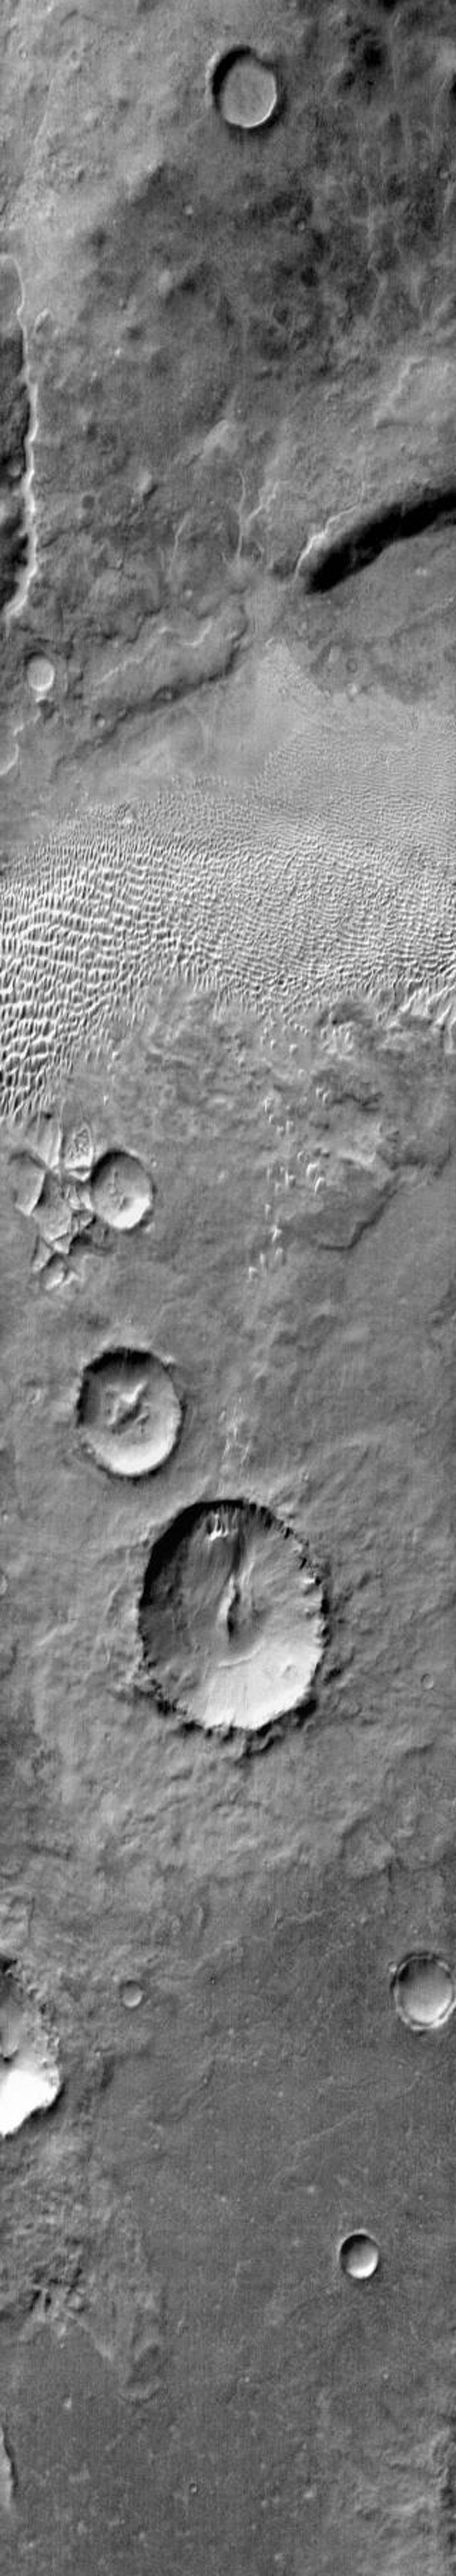 NASA's 2001 Mars Odyssey infrared image shows a group of dunes in Aonia Terra.